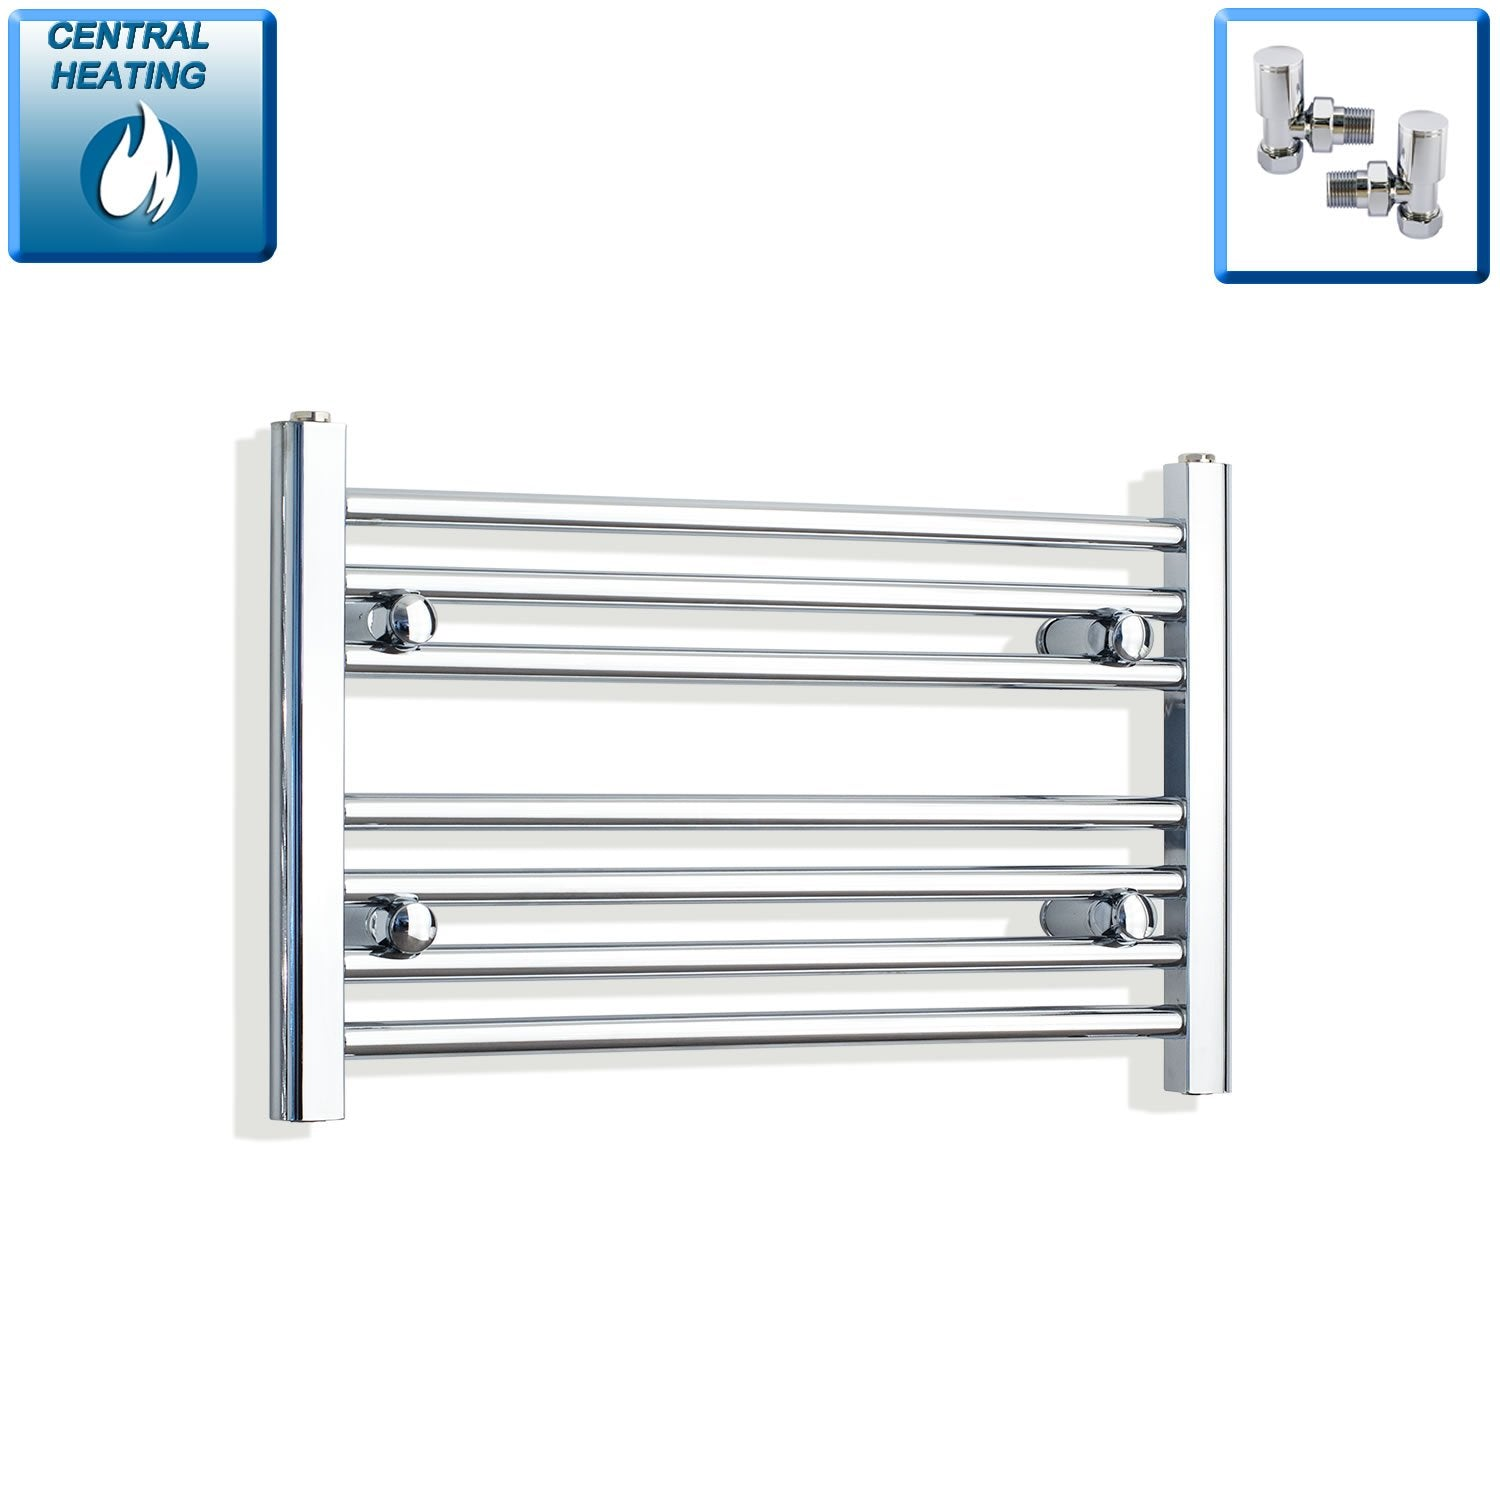 700mm Wide 400mm High Curved Chrome Heated Towel Rail Radiator HTR,With Angled Valve